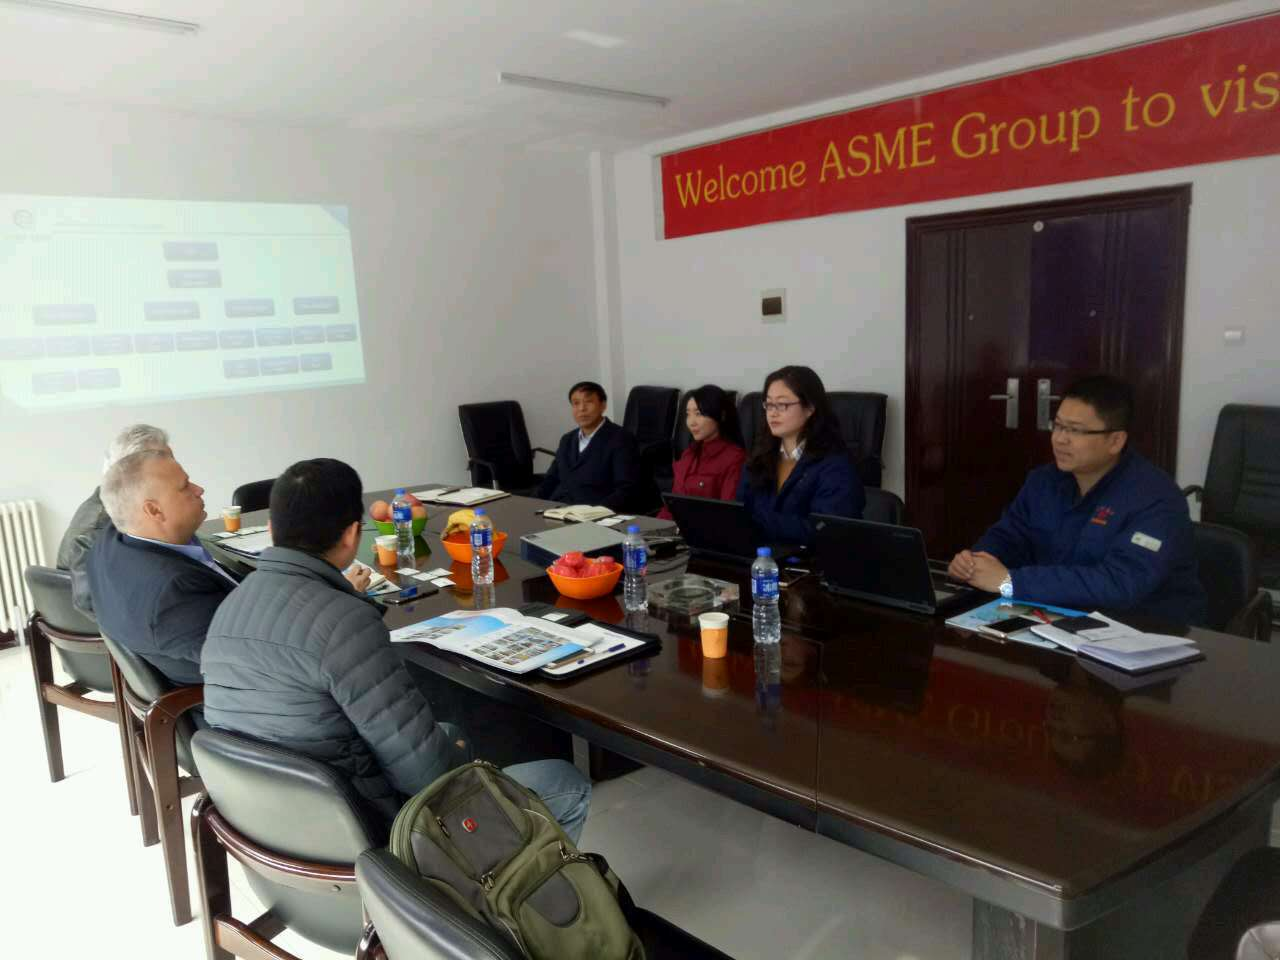 US customers visit LNBF for business negotiations and sign.